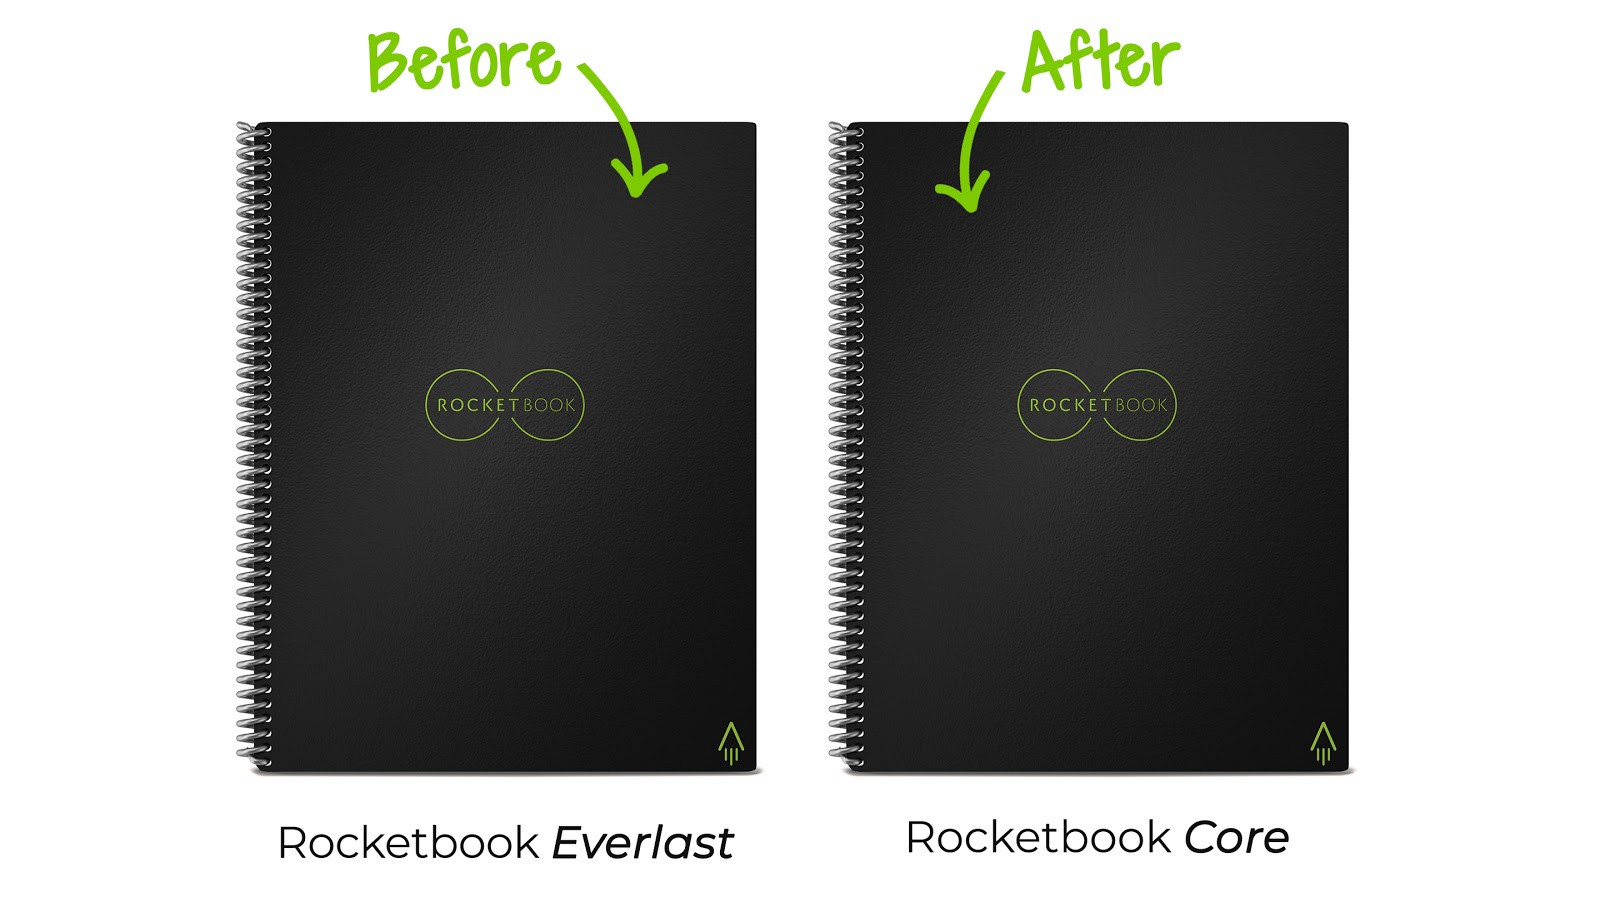 The Facts About Rocketbook Smells Revealed